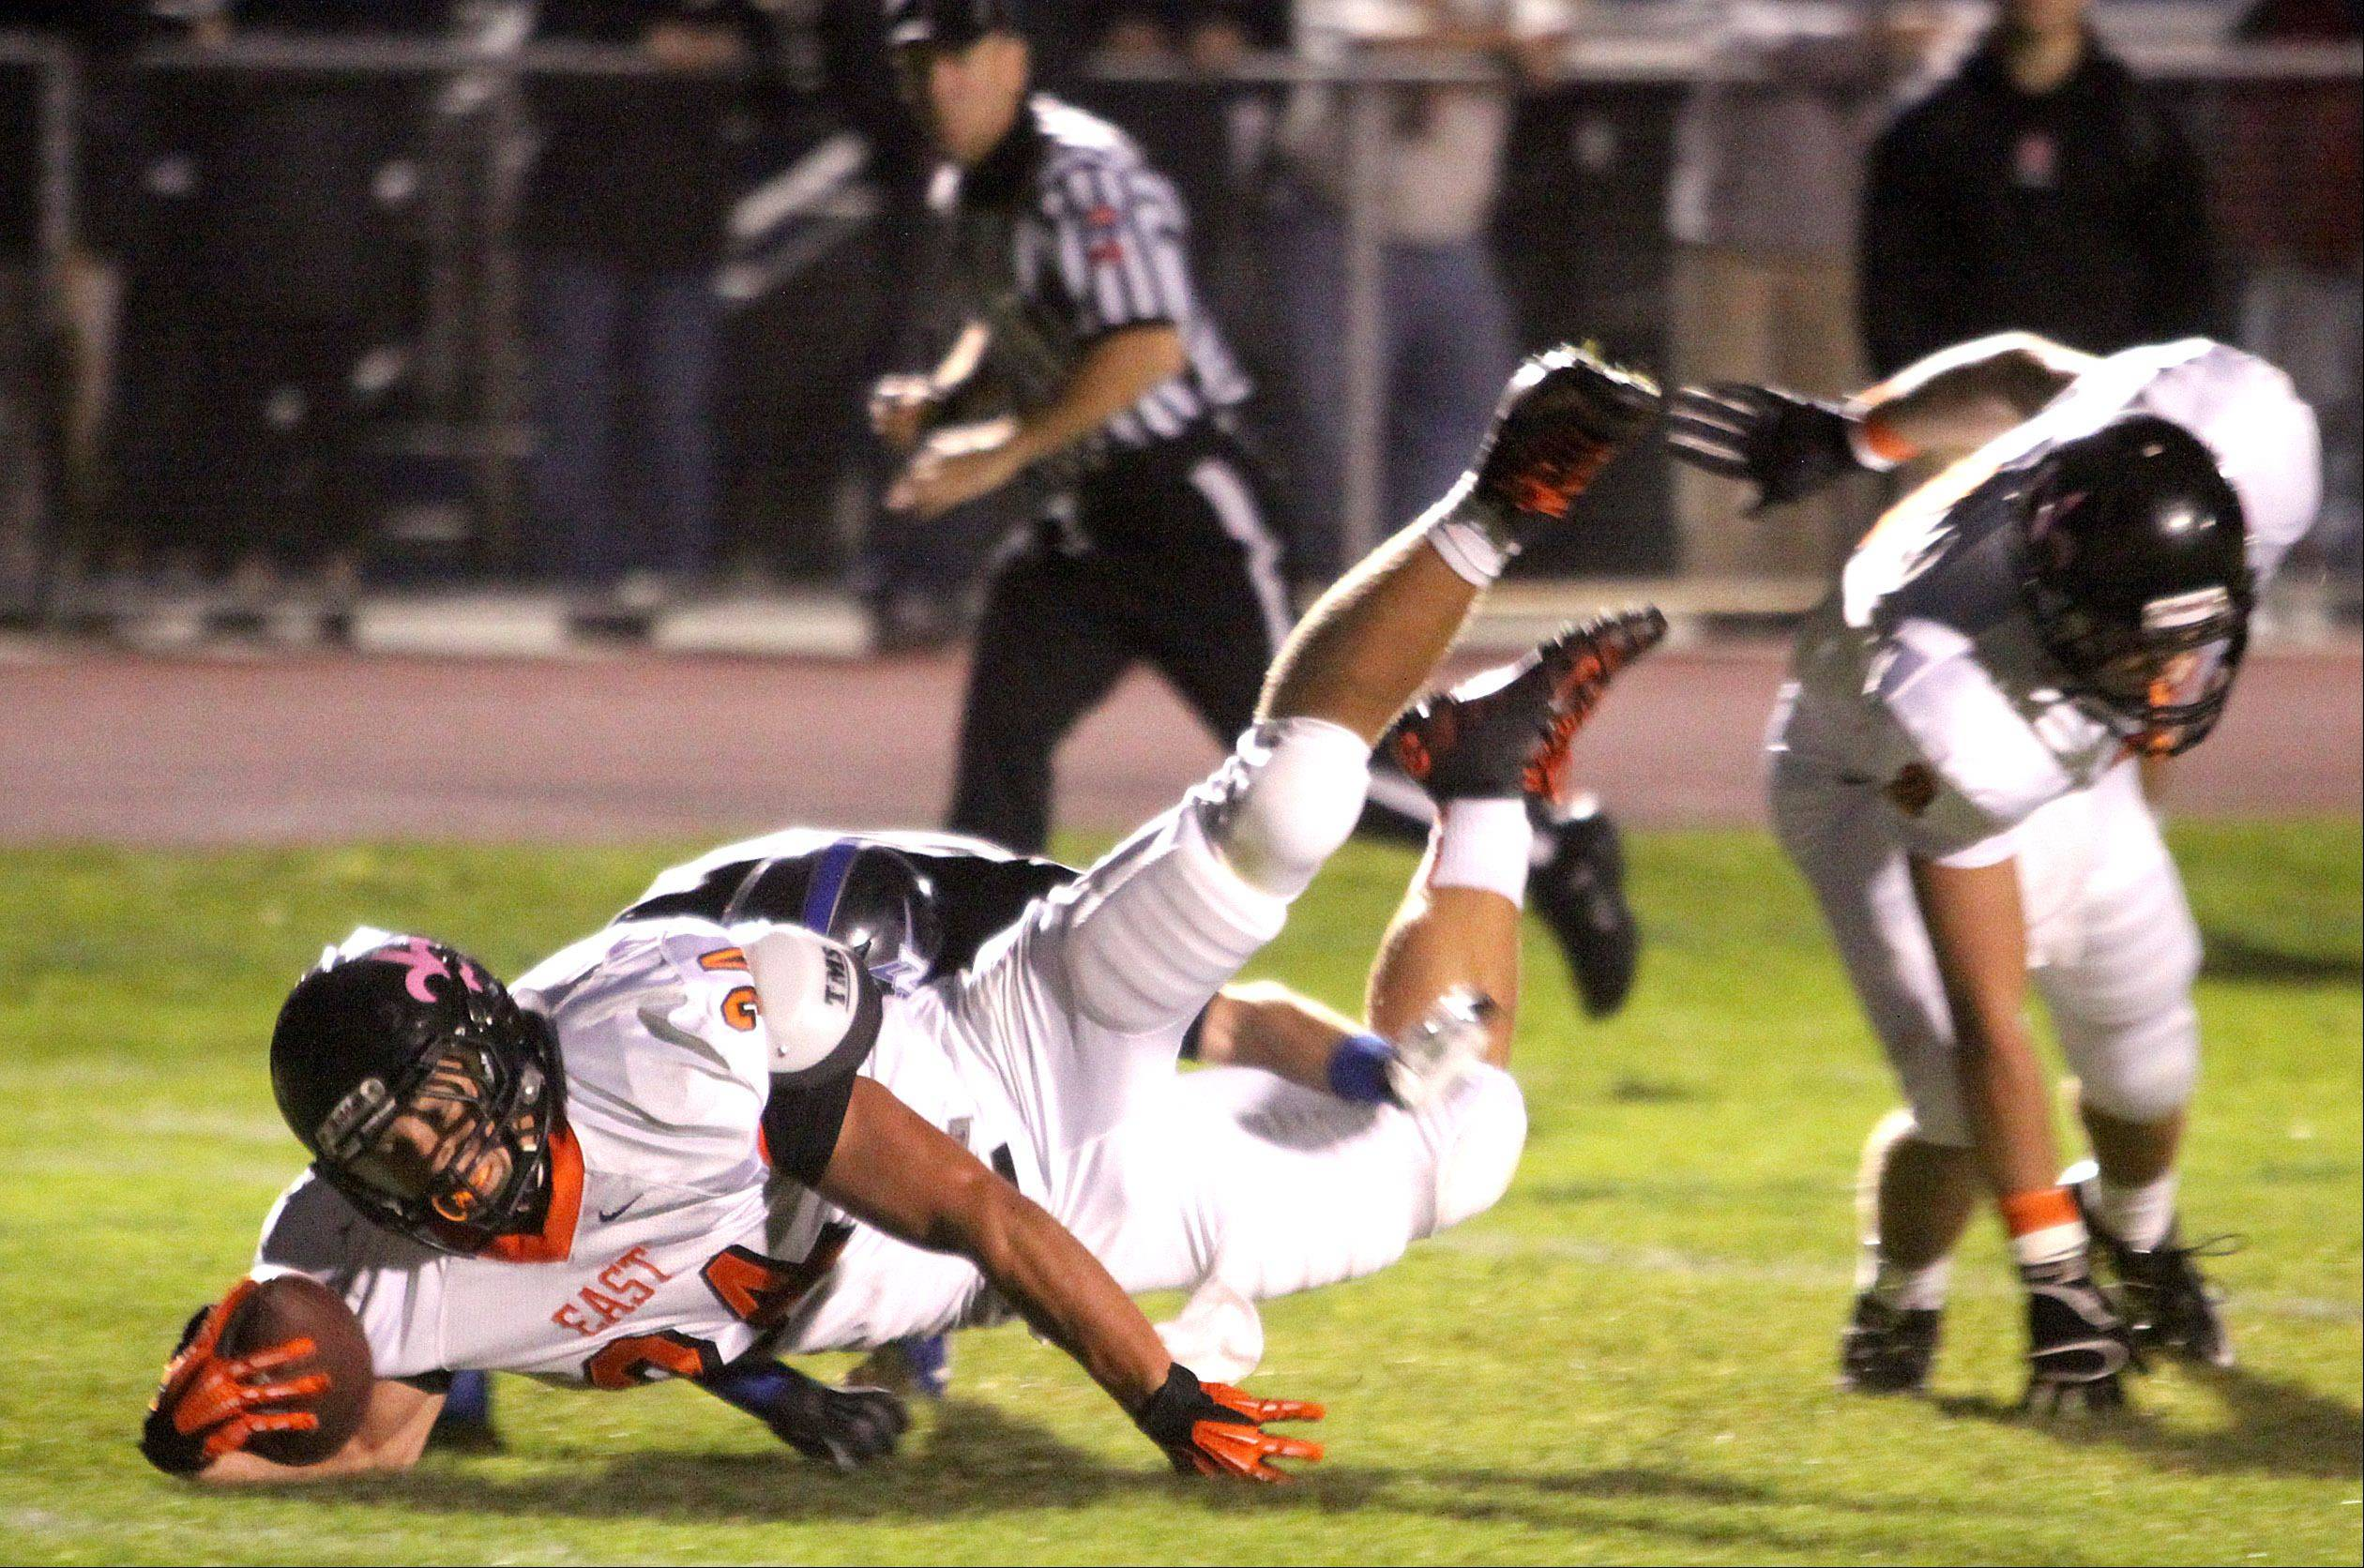 St. Charles East's Joe Hoscheit dives for extra yardage during Friday's football game at St. Charles North.